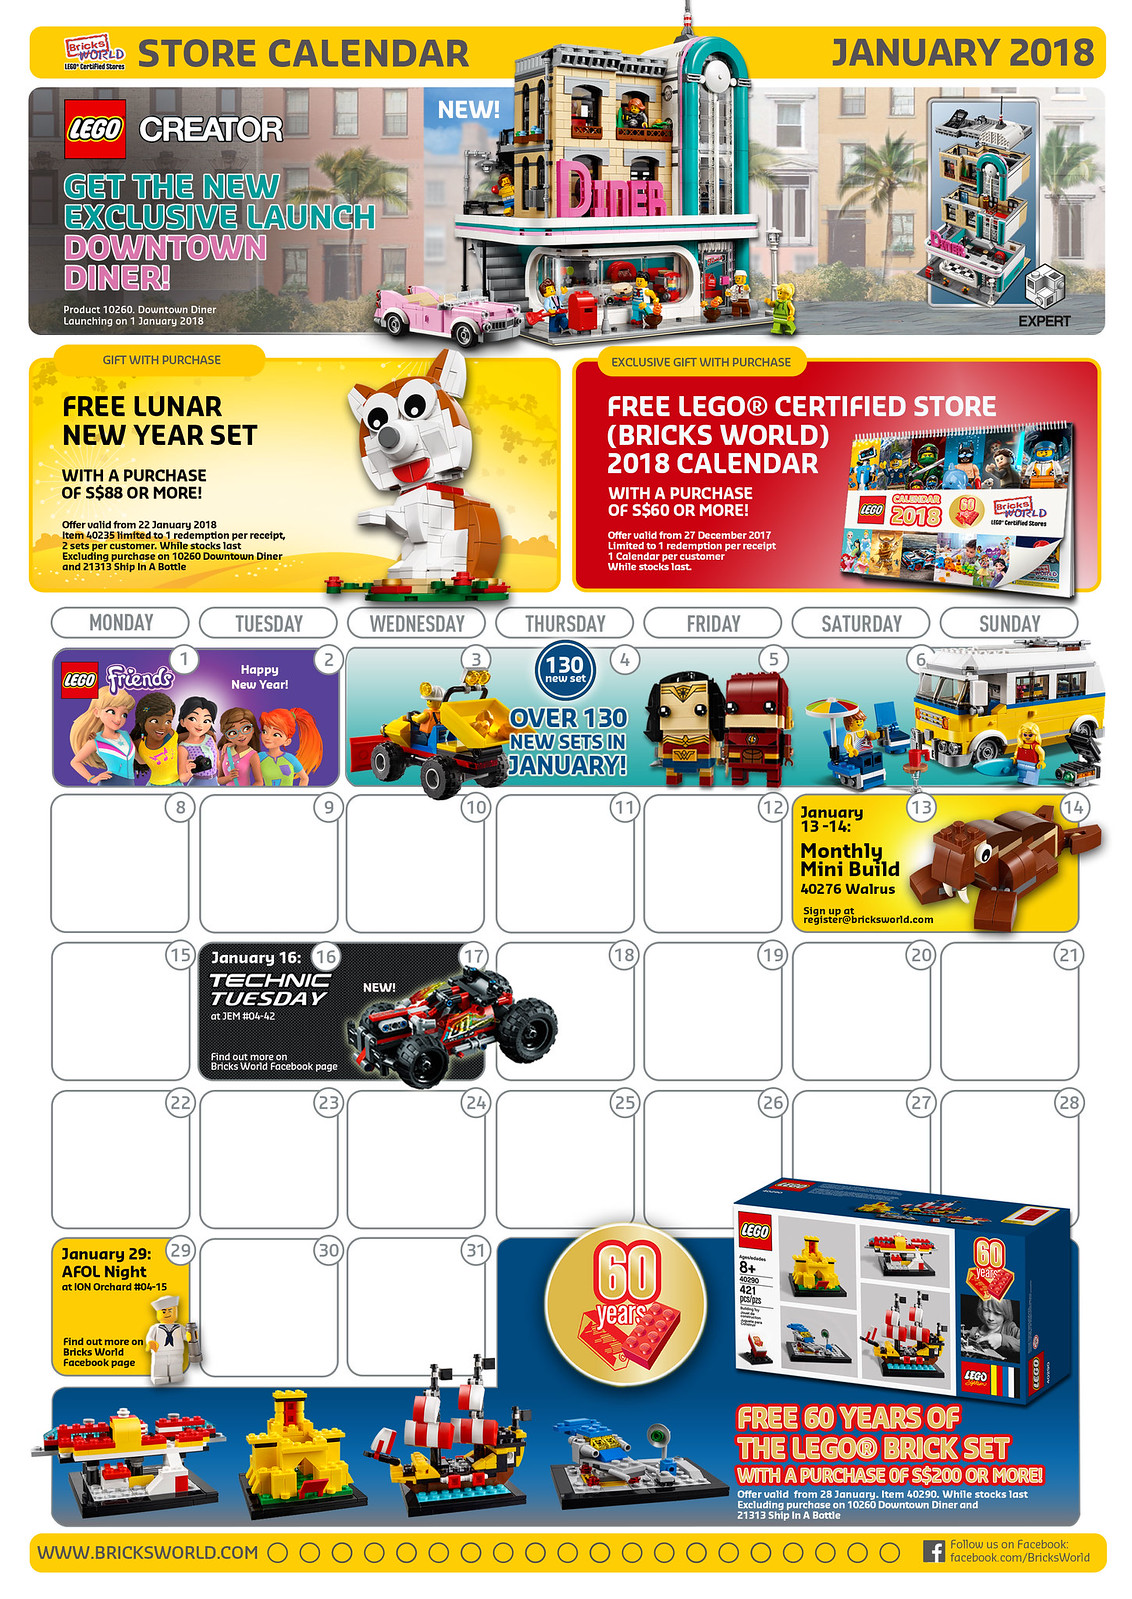 "Lego 2019 January Calendar Bricksworld January 2018 LEGO Store Calendar > Candidbricks"" title=""Lego 2019 January Calendar Bricksworld January 2018 LEGO Store Calendar > Candidbricks"" width=""200″ height=""200″> <img src="